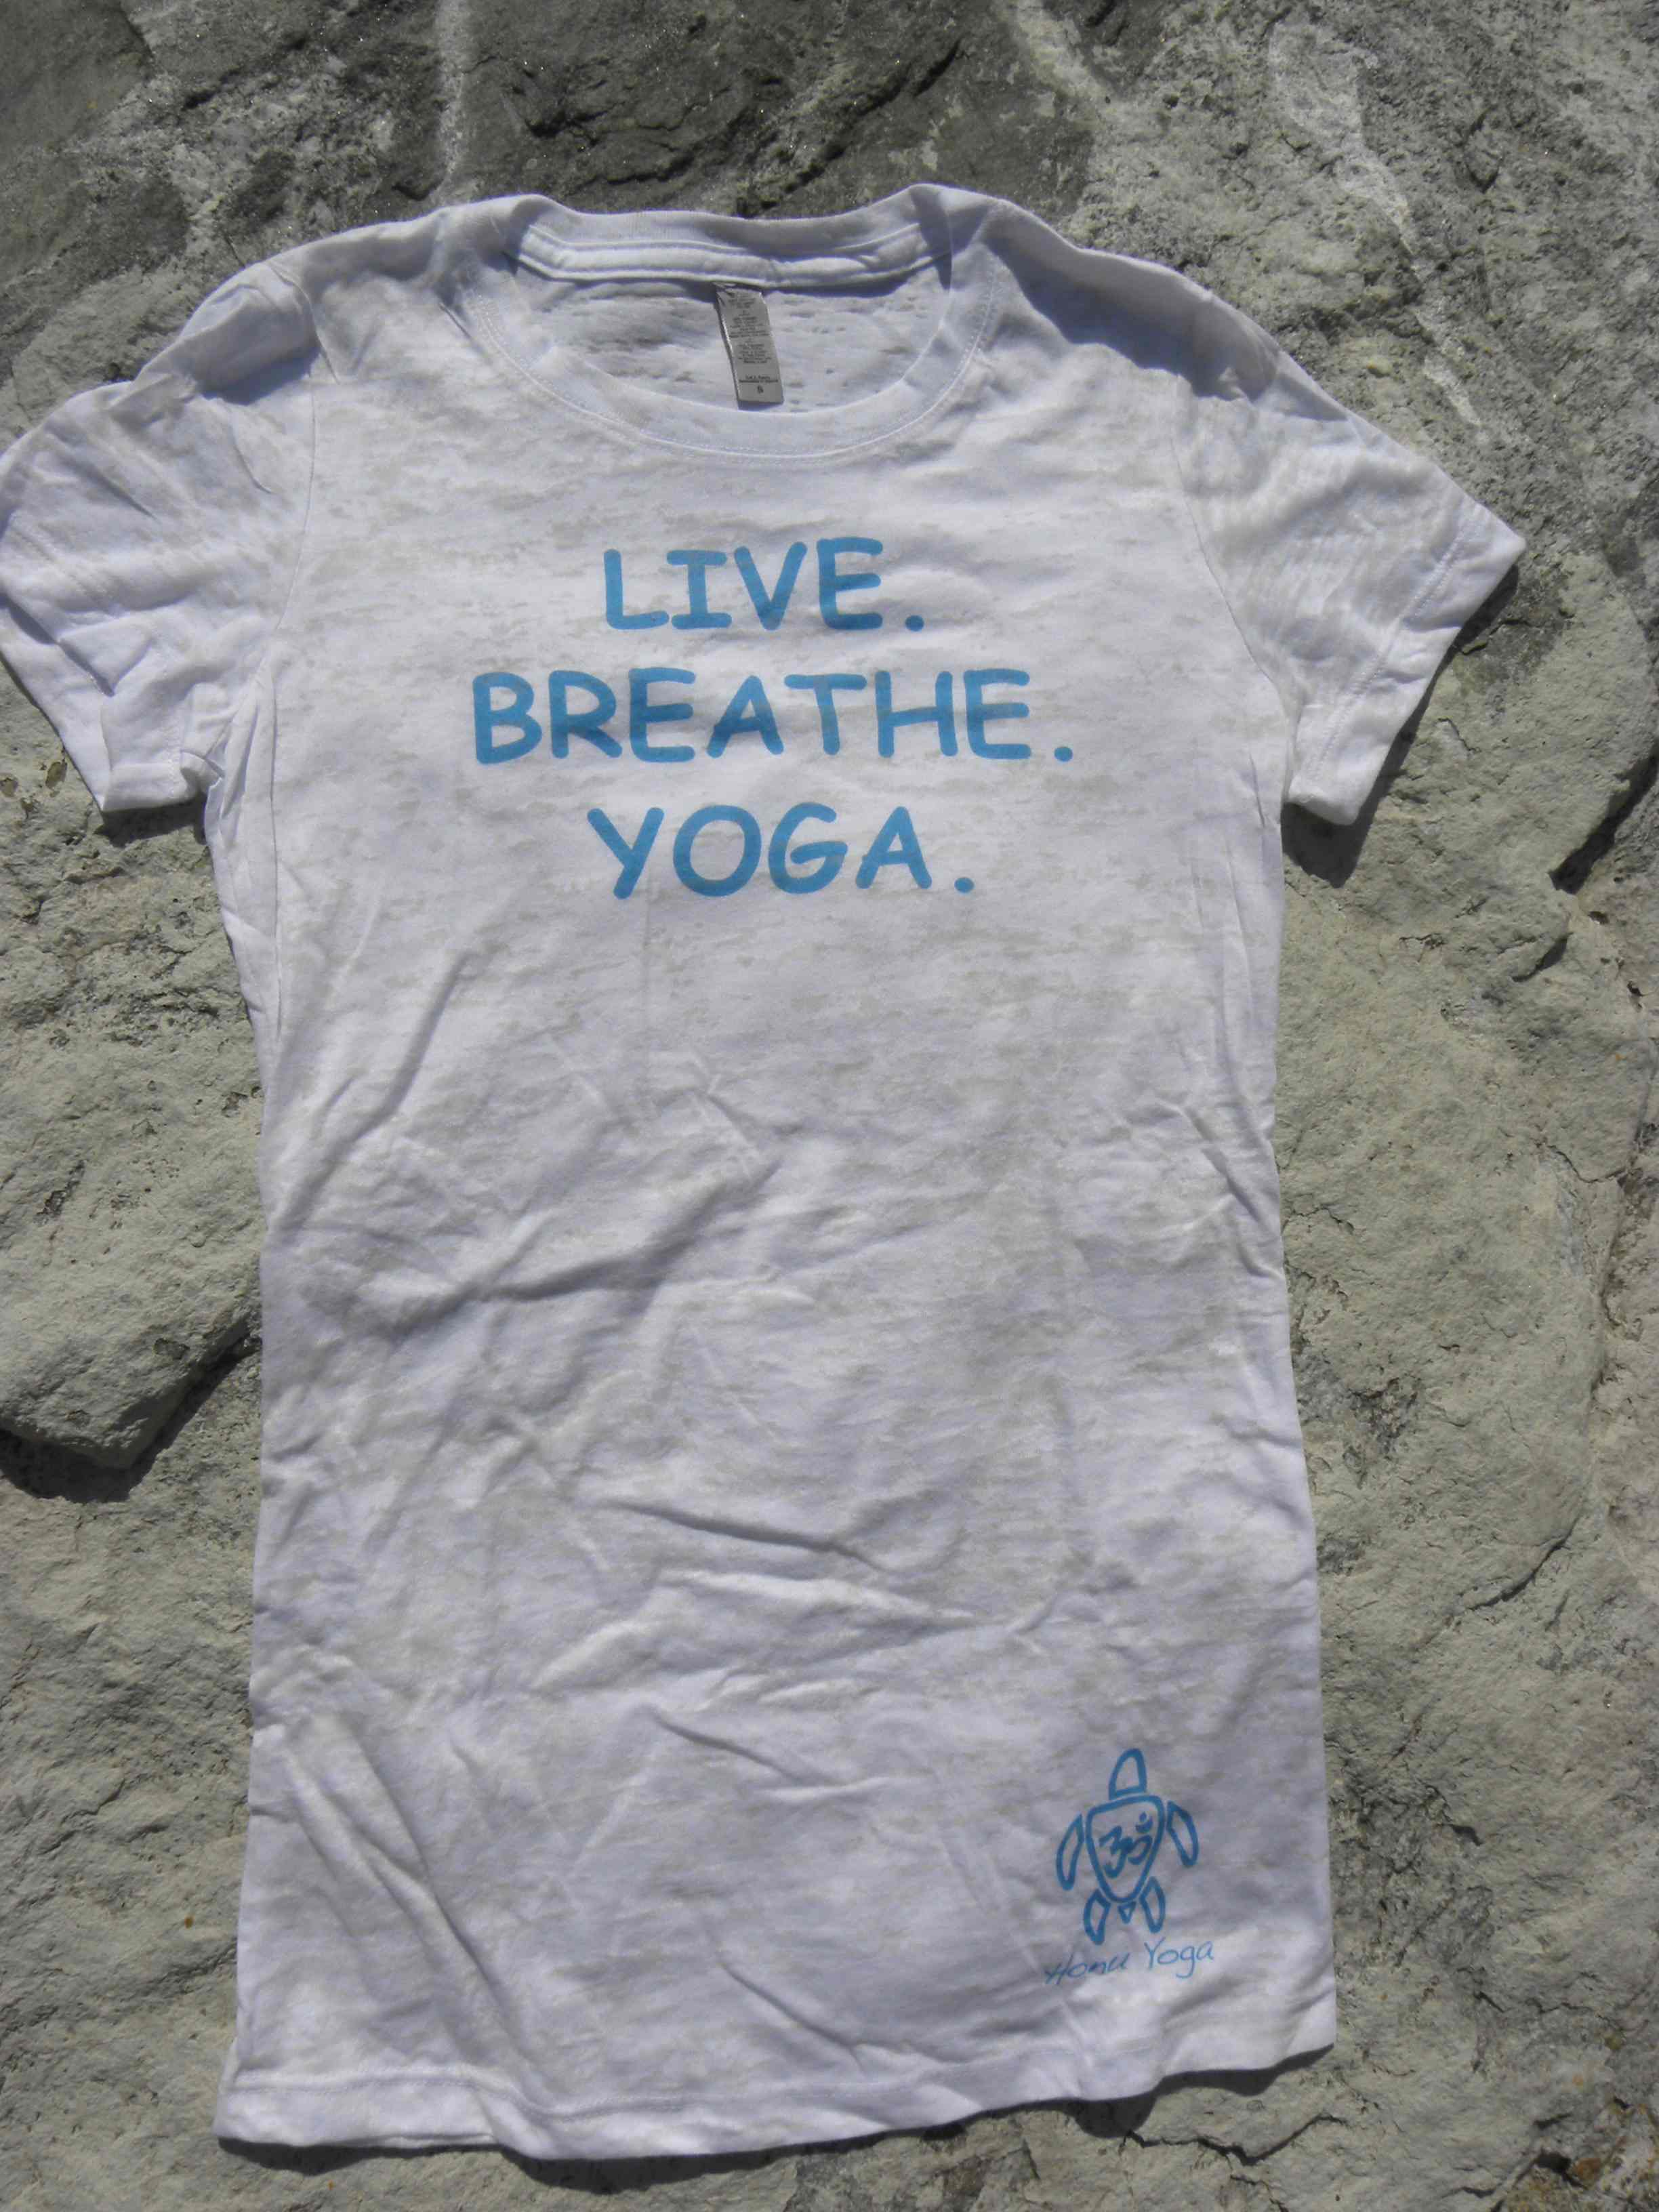 Yoga Clothes What Sea Turtles Wish You Were Wearing Kukhahnyoga S Blog